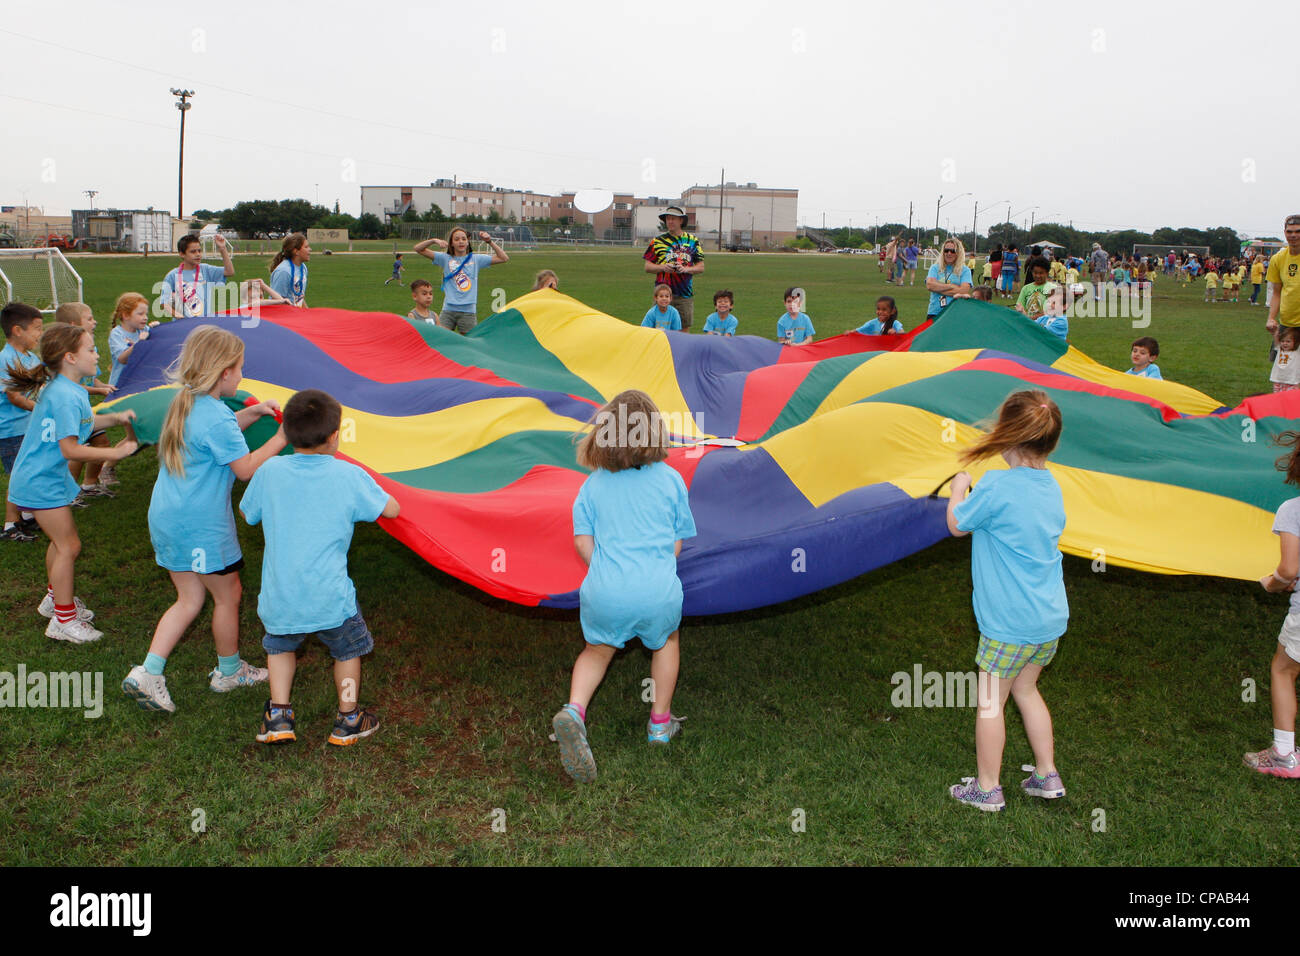 Elementary school age children enjoy lifting the parachute toss during outdoor physical activities at school - Stock Image